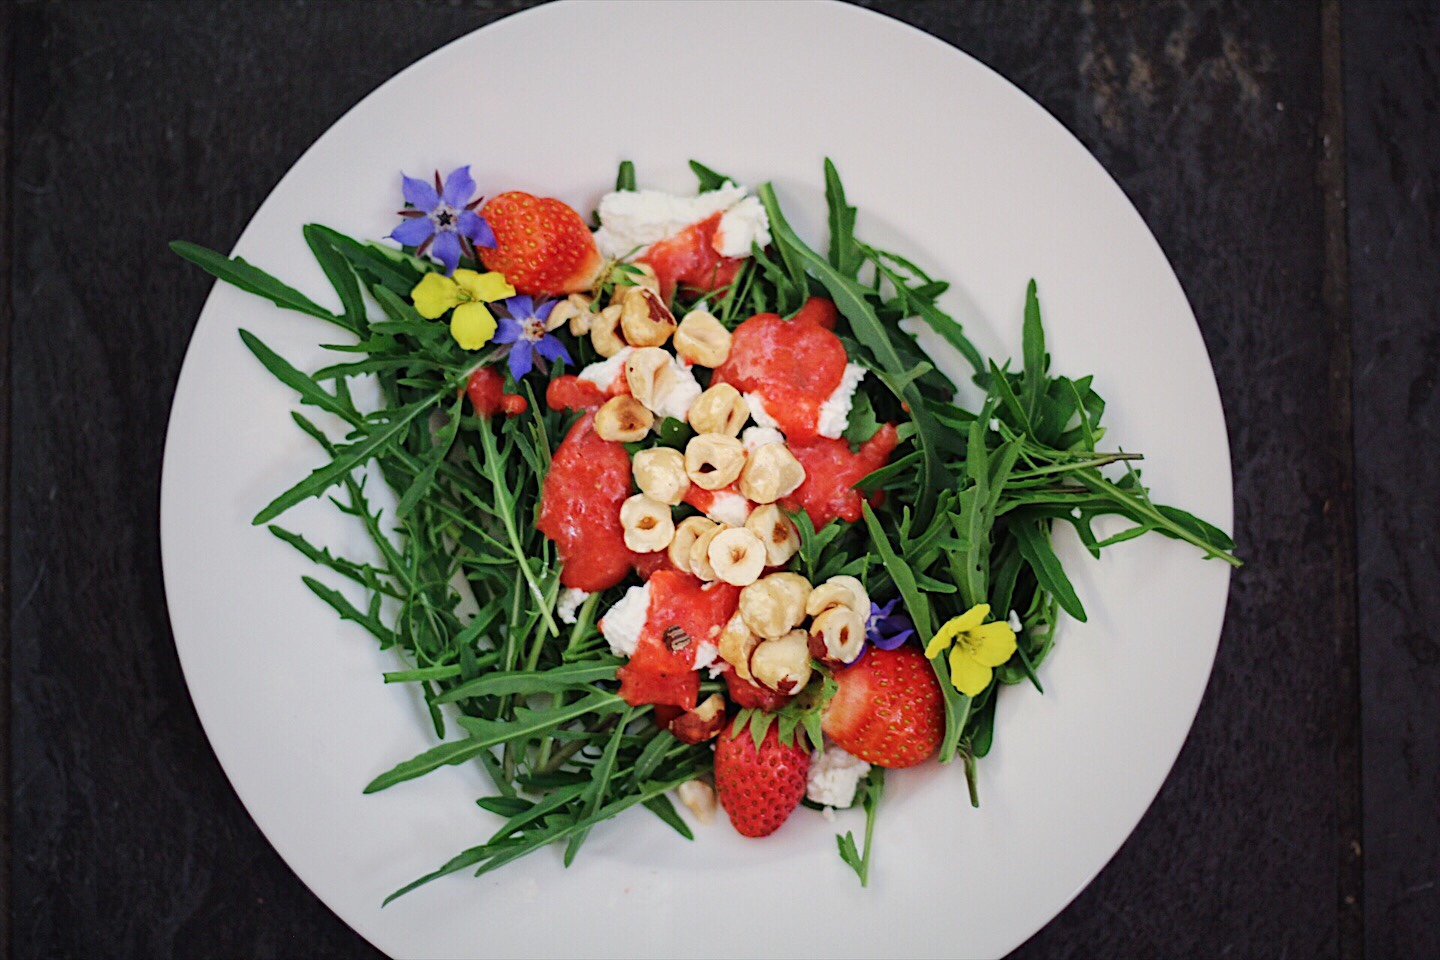 Fresh Strawberry Vinaigrette with Arugula, Hazelnuts and Goat Cheese